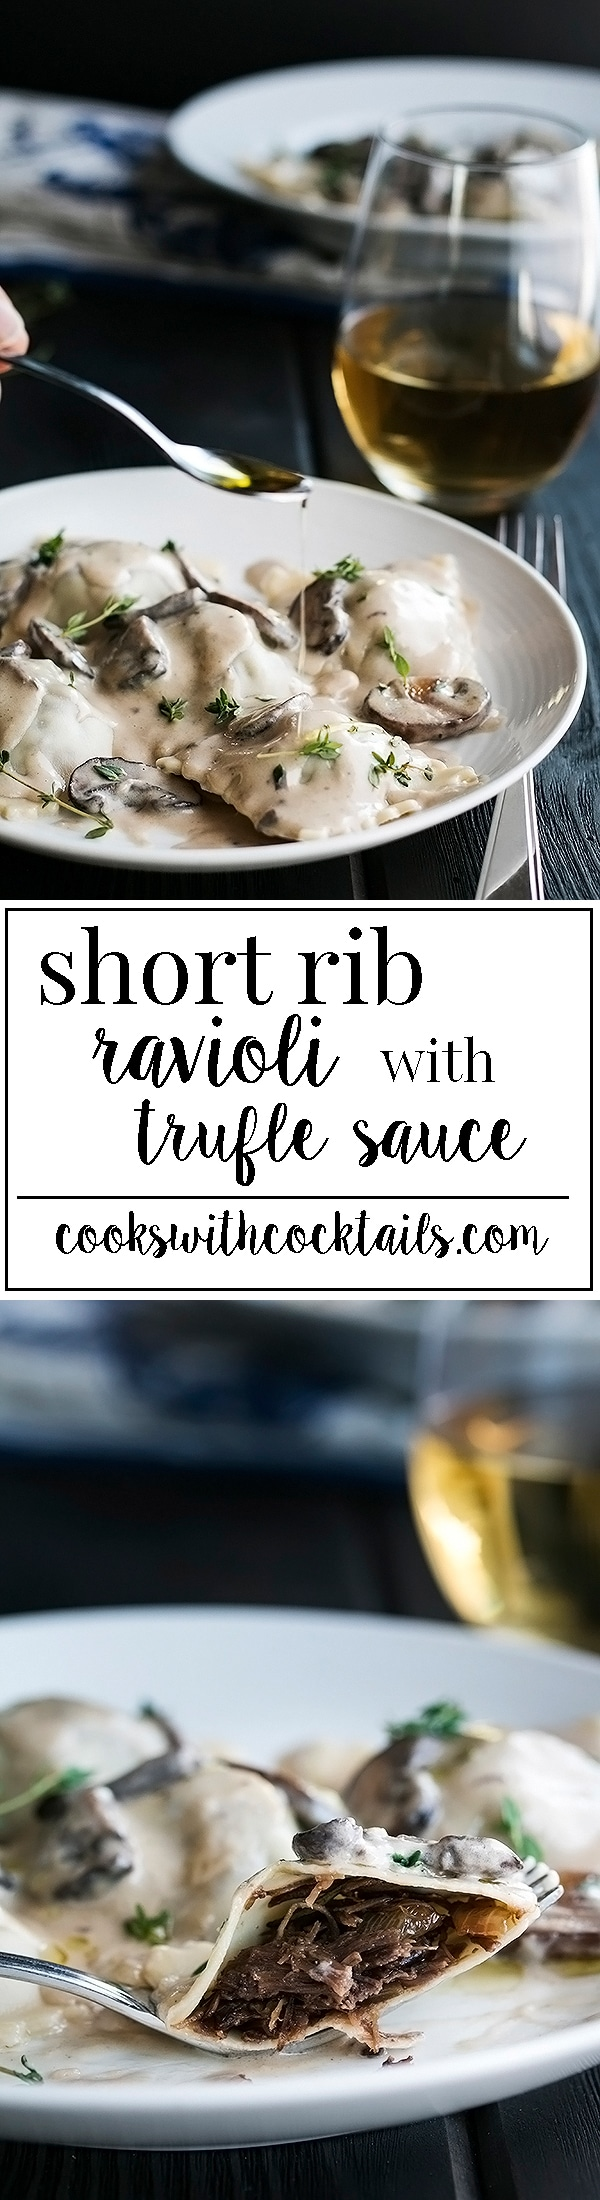 Homemade Short Rib Ravioli - A labour of love, well worth the time to make, and not as hard as you think!  The filling is easy, made with instant pot short ribs and caramelized onions that gets stuffed into tender homemade pasta pockets and covered in the most delectable sauce!#instantpot #shortribs #homemadepasta #homemaderavioli #truffle #mushroomsauce